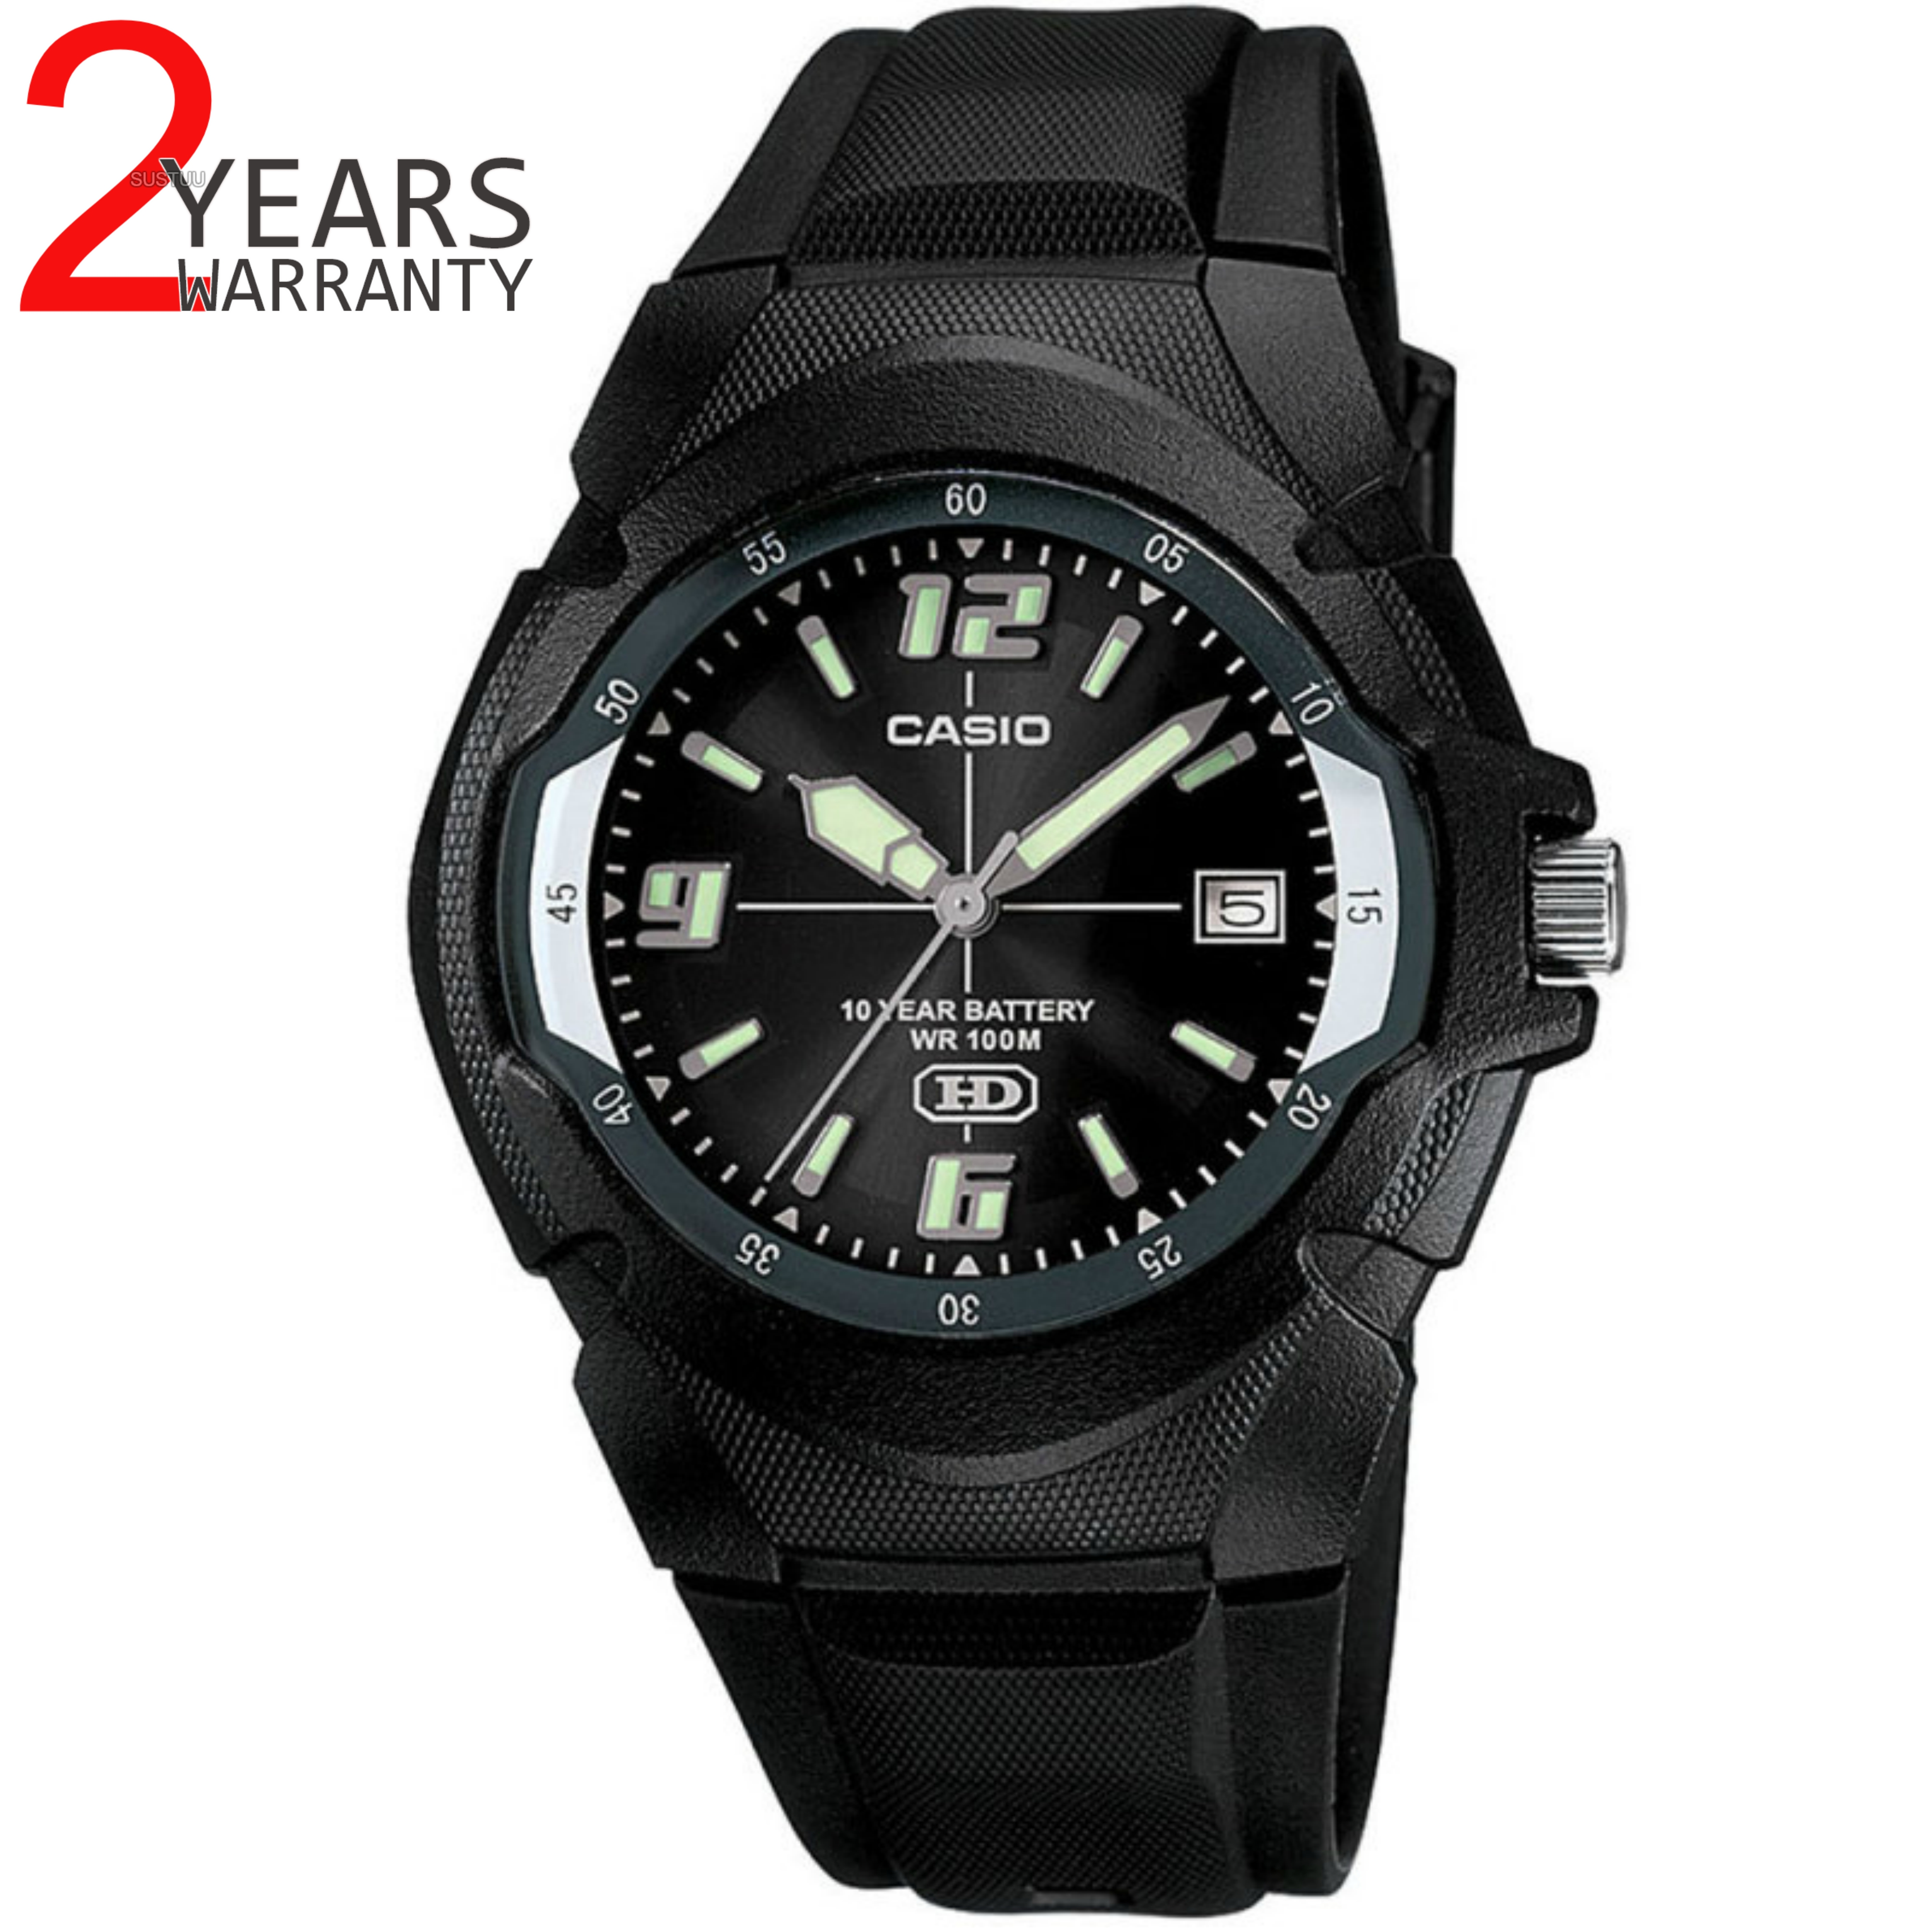 Casio MW600F-1AVER Men's Enticer Series Watch|100M Water Resistance|Resin|Black|